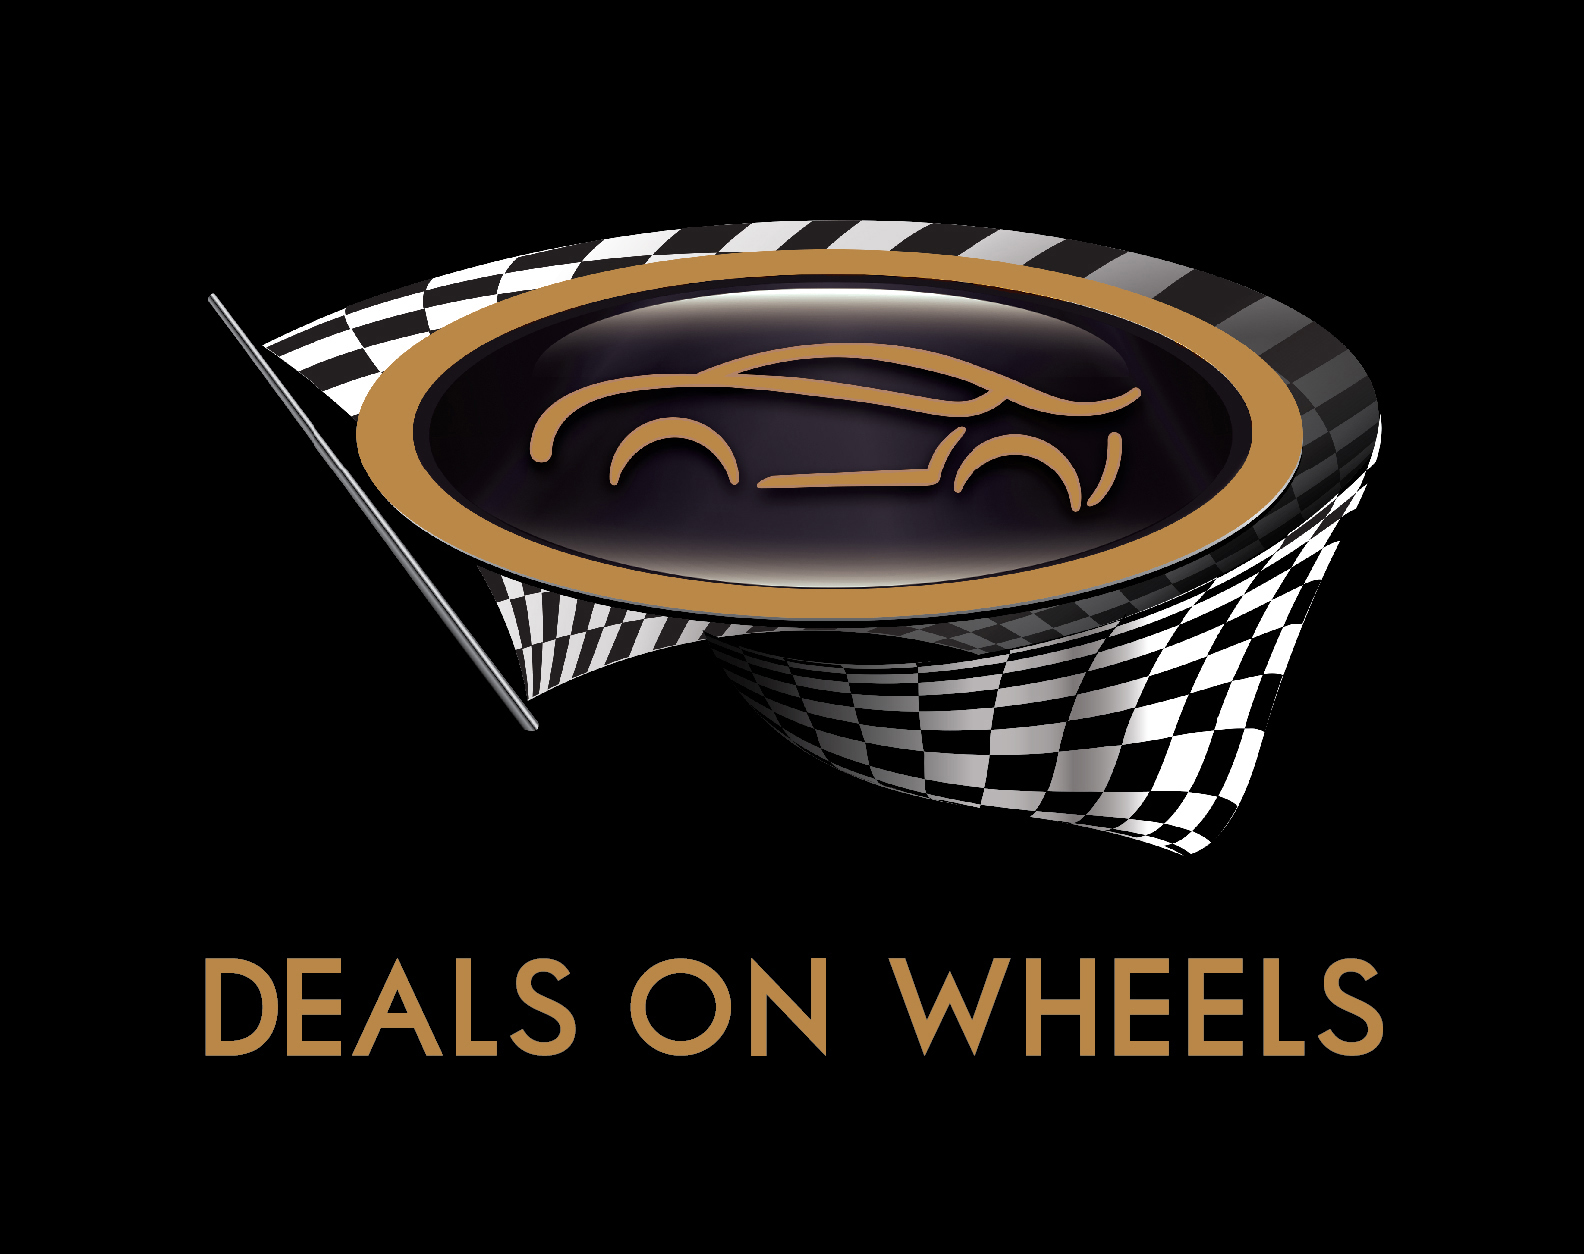 Deals On Wheels